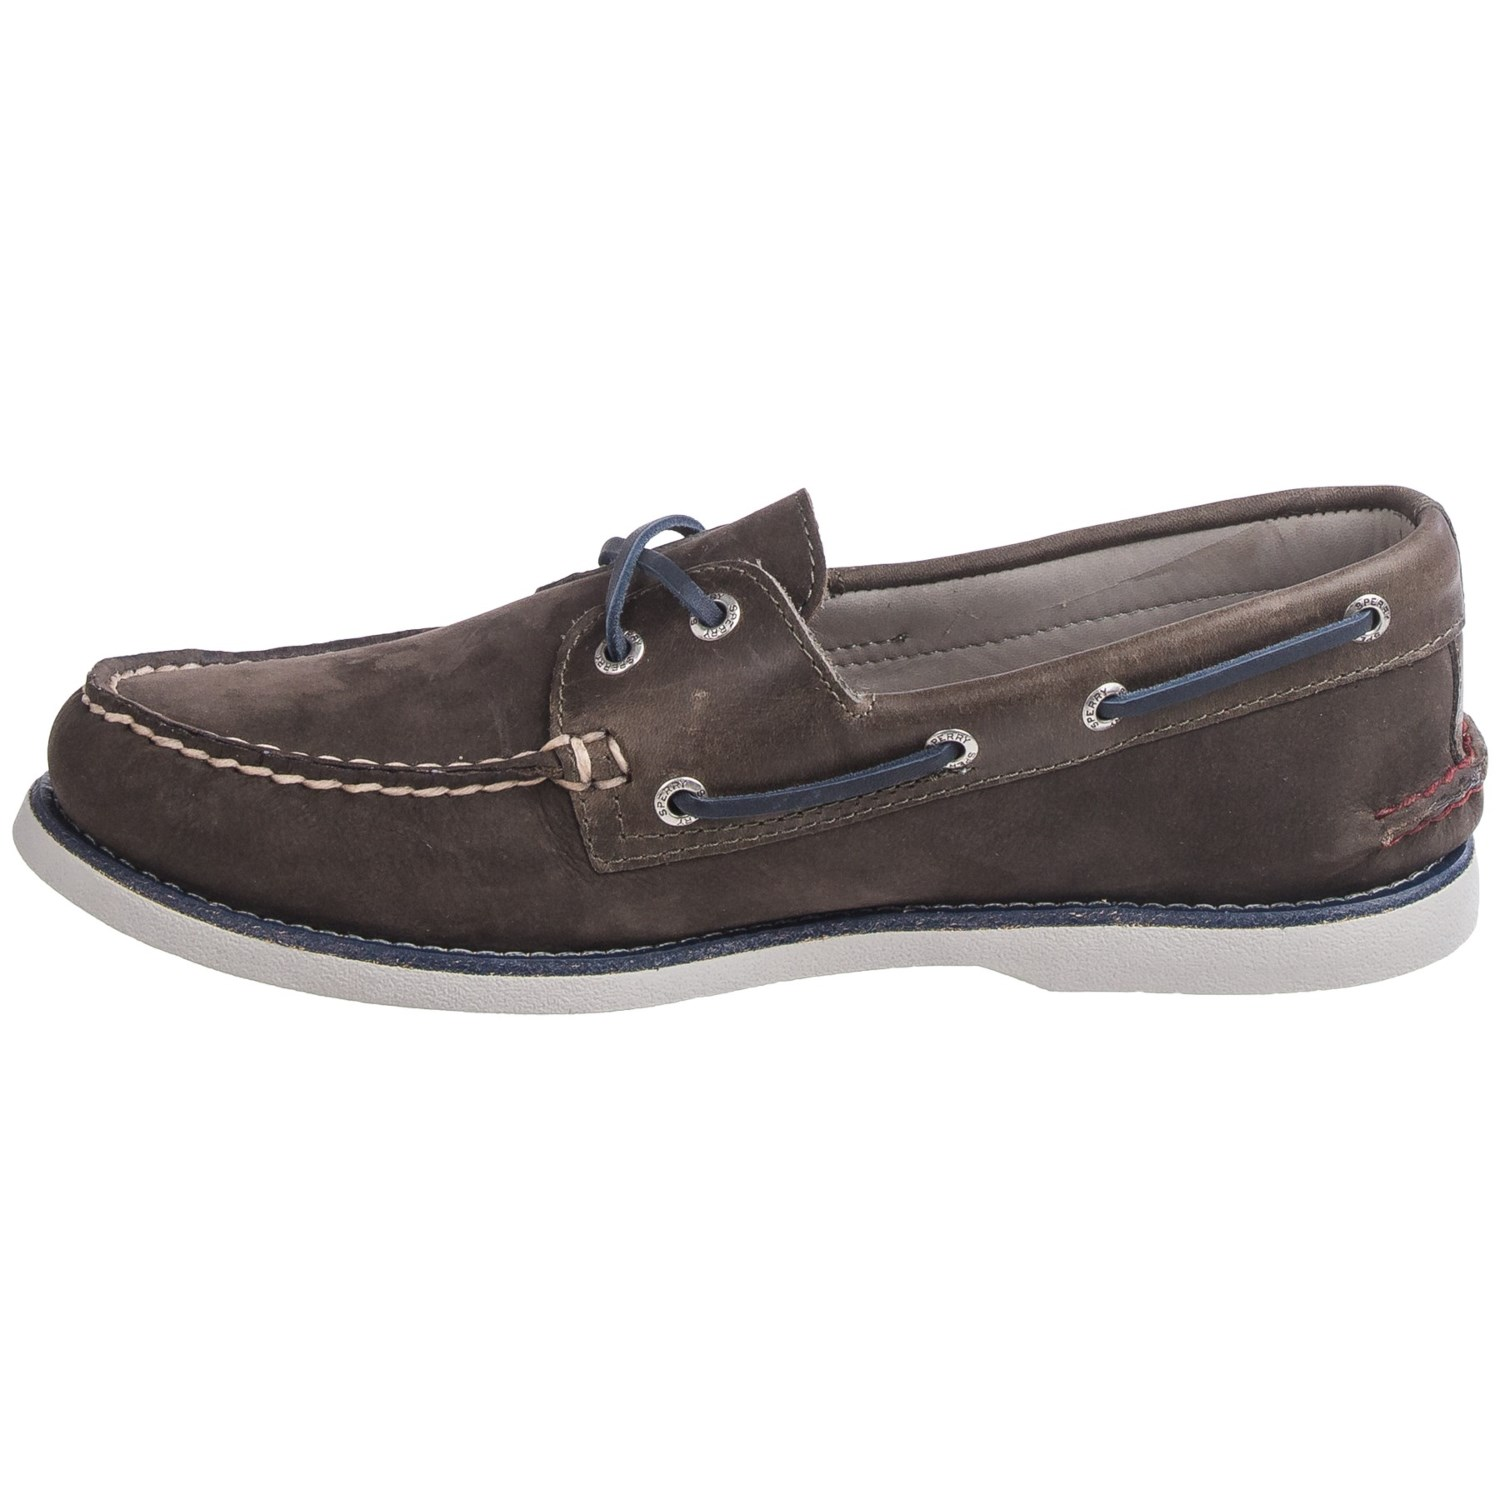 sperry men Stay comfortable and stylish with men's sperry shoes check out a wide assortment of sperrys at shoe carnival shoe carnival.